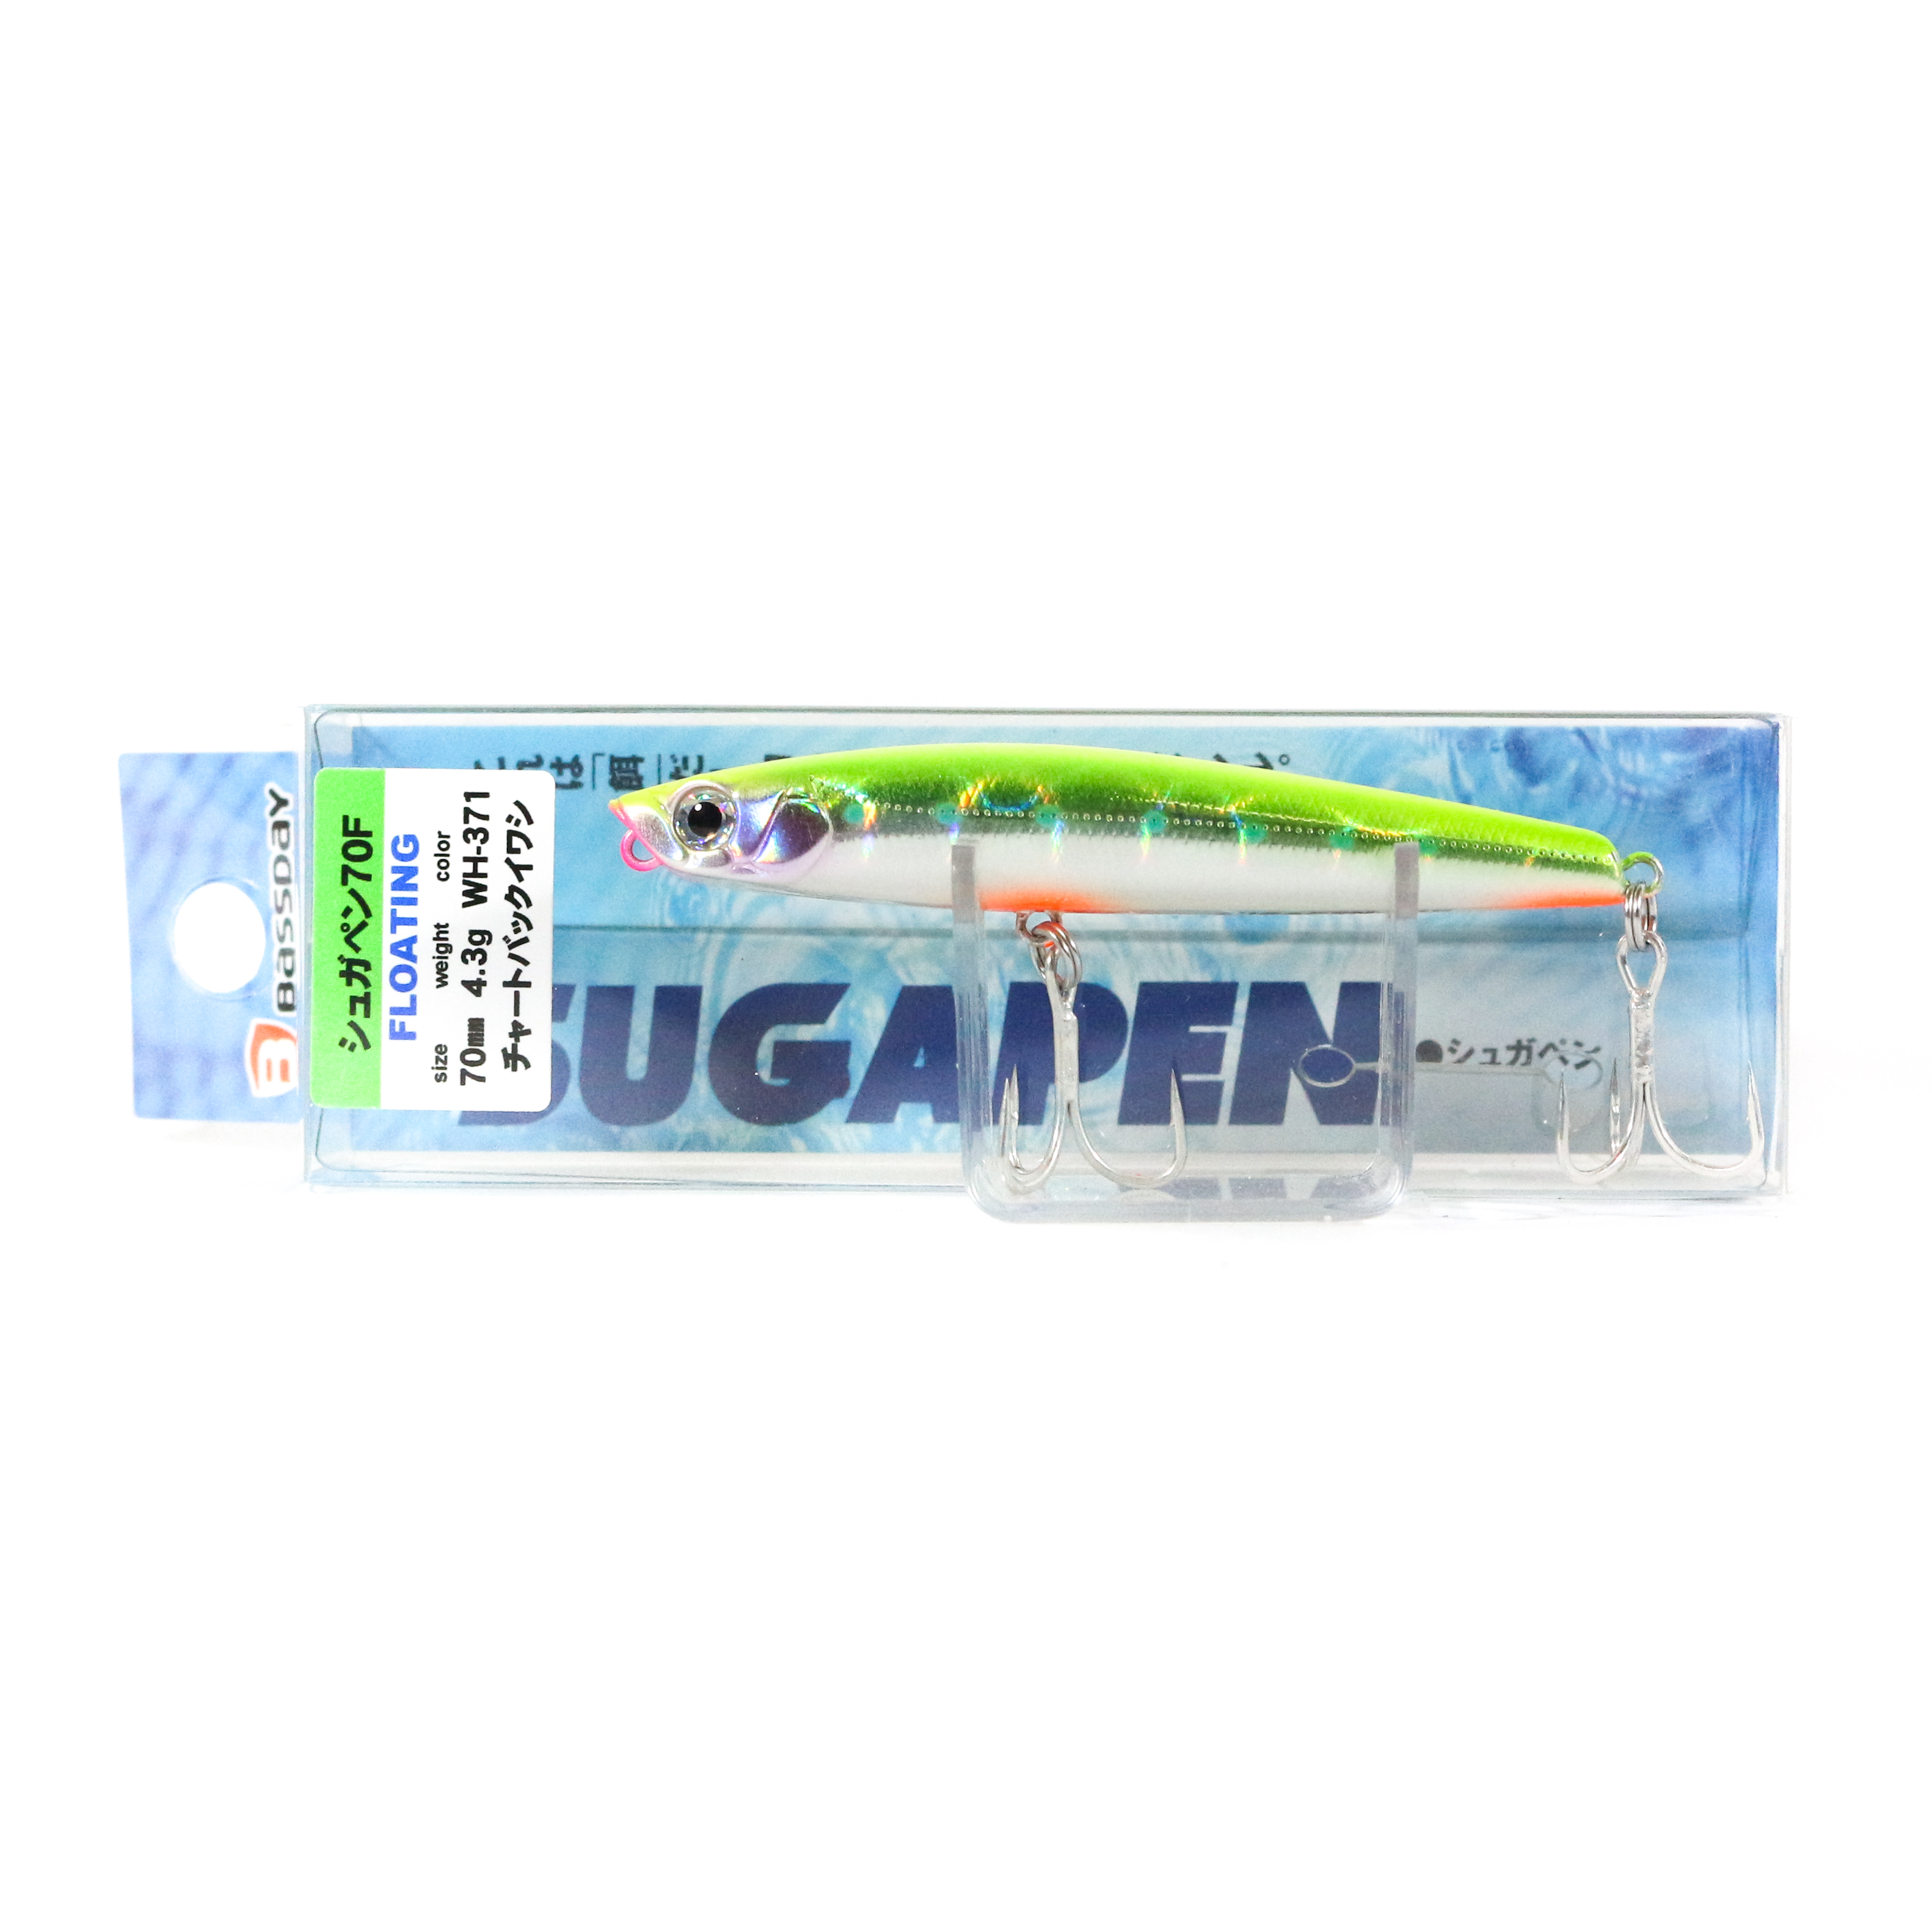 Bassday Sugar Pen 70F Floating Lure 4.3 grams WH-371 (9347)